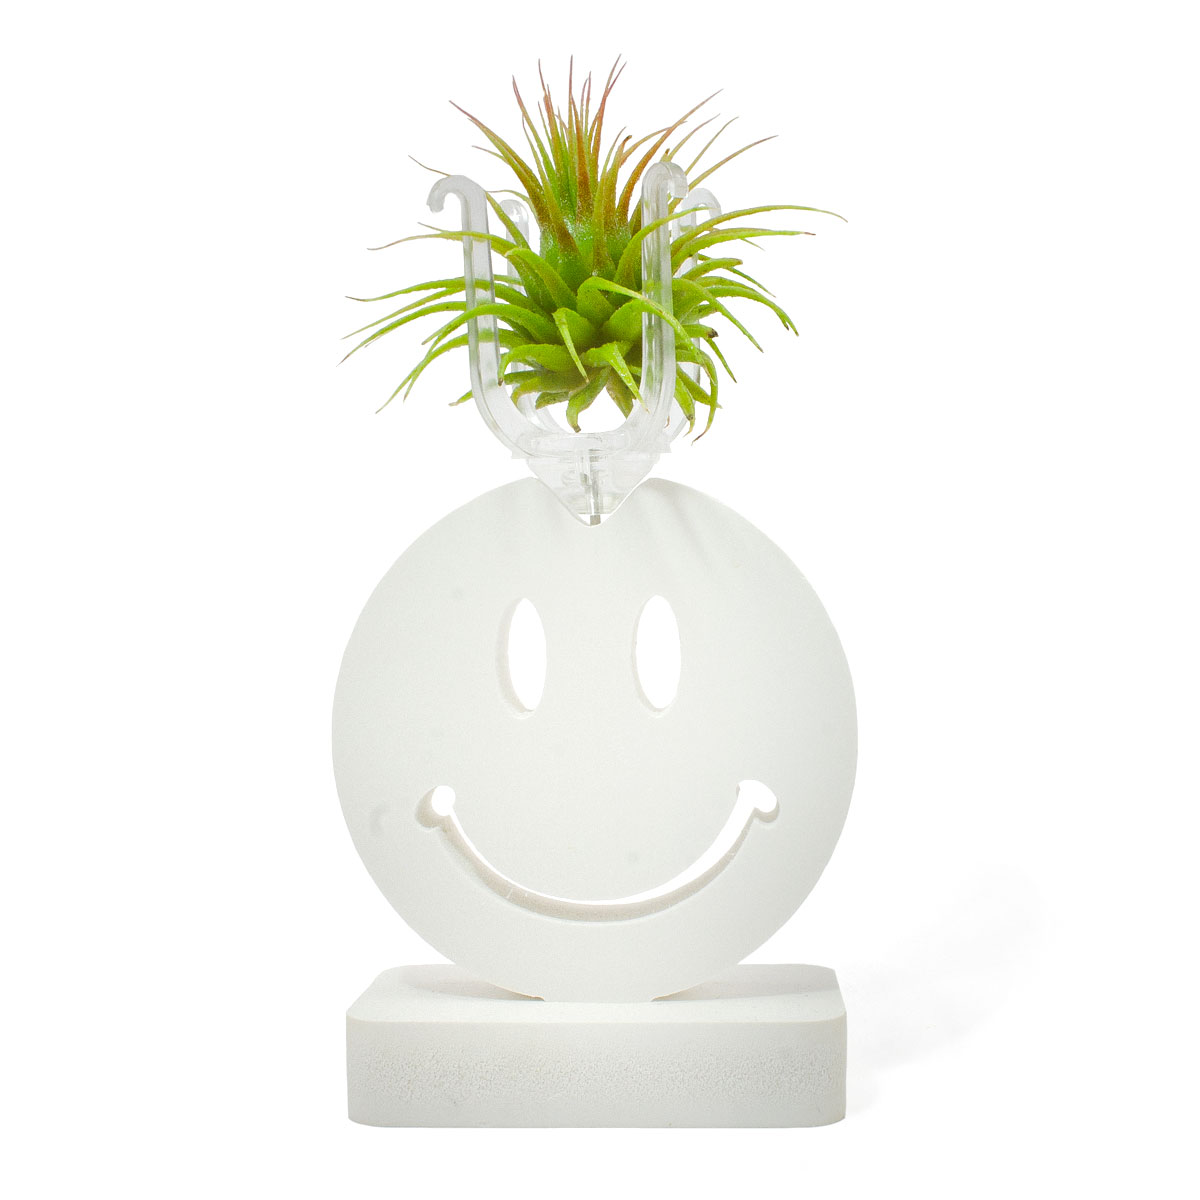 Smiling Face Expression One + Ionantha Guatemala